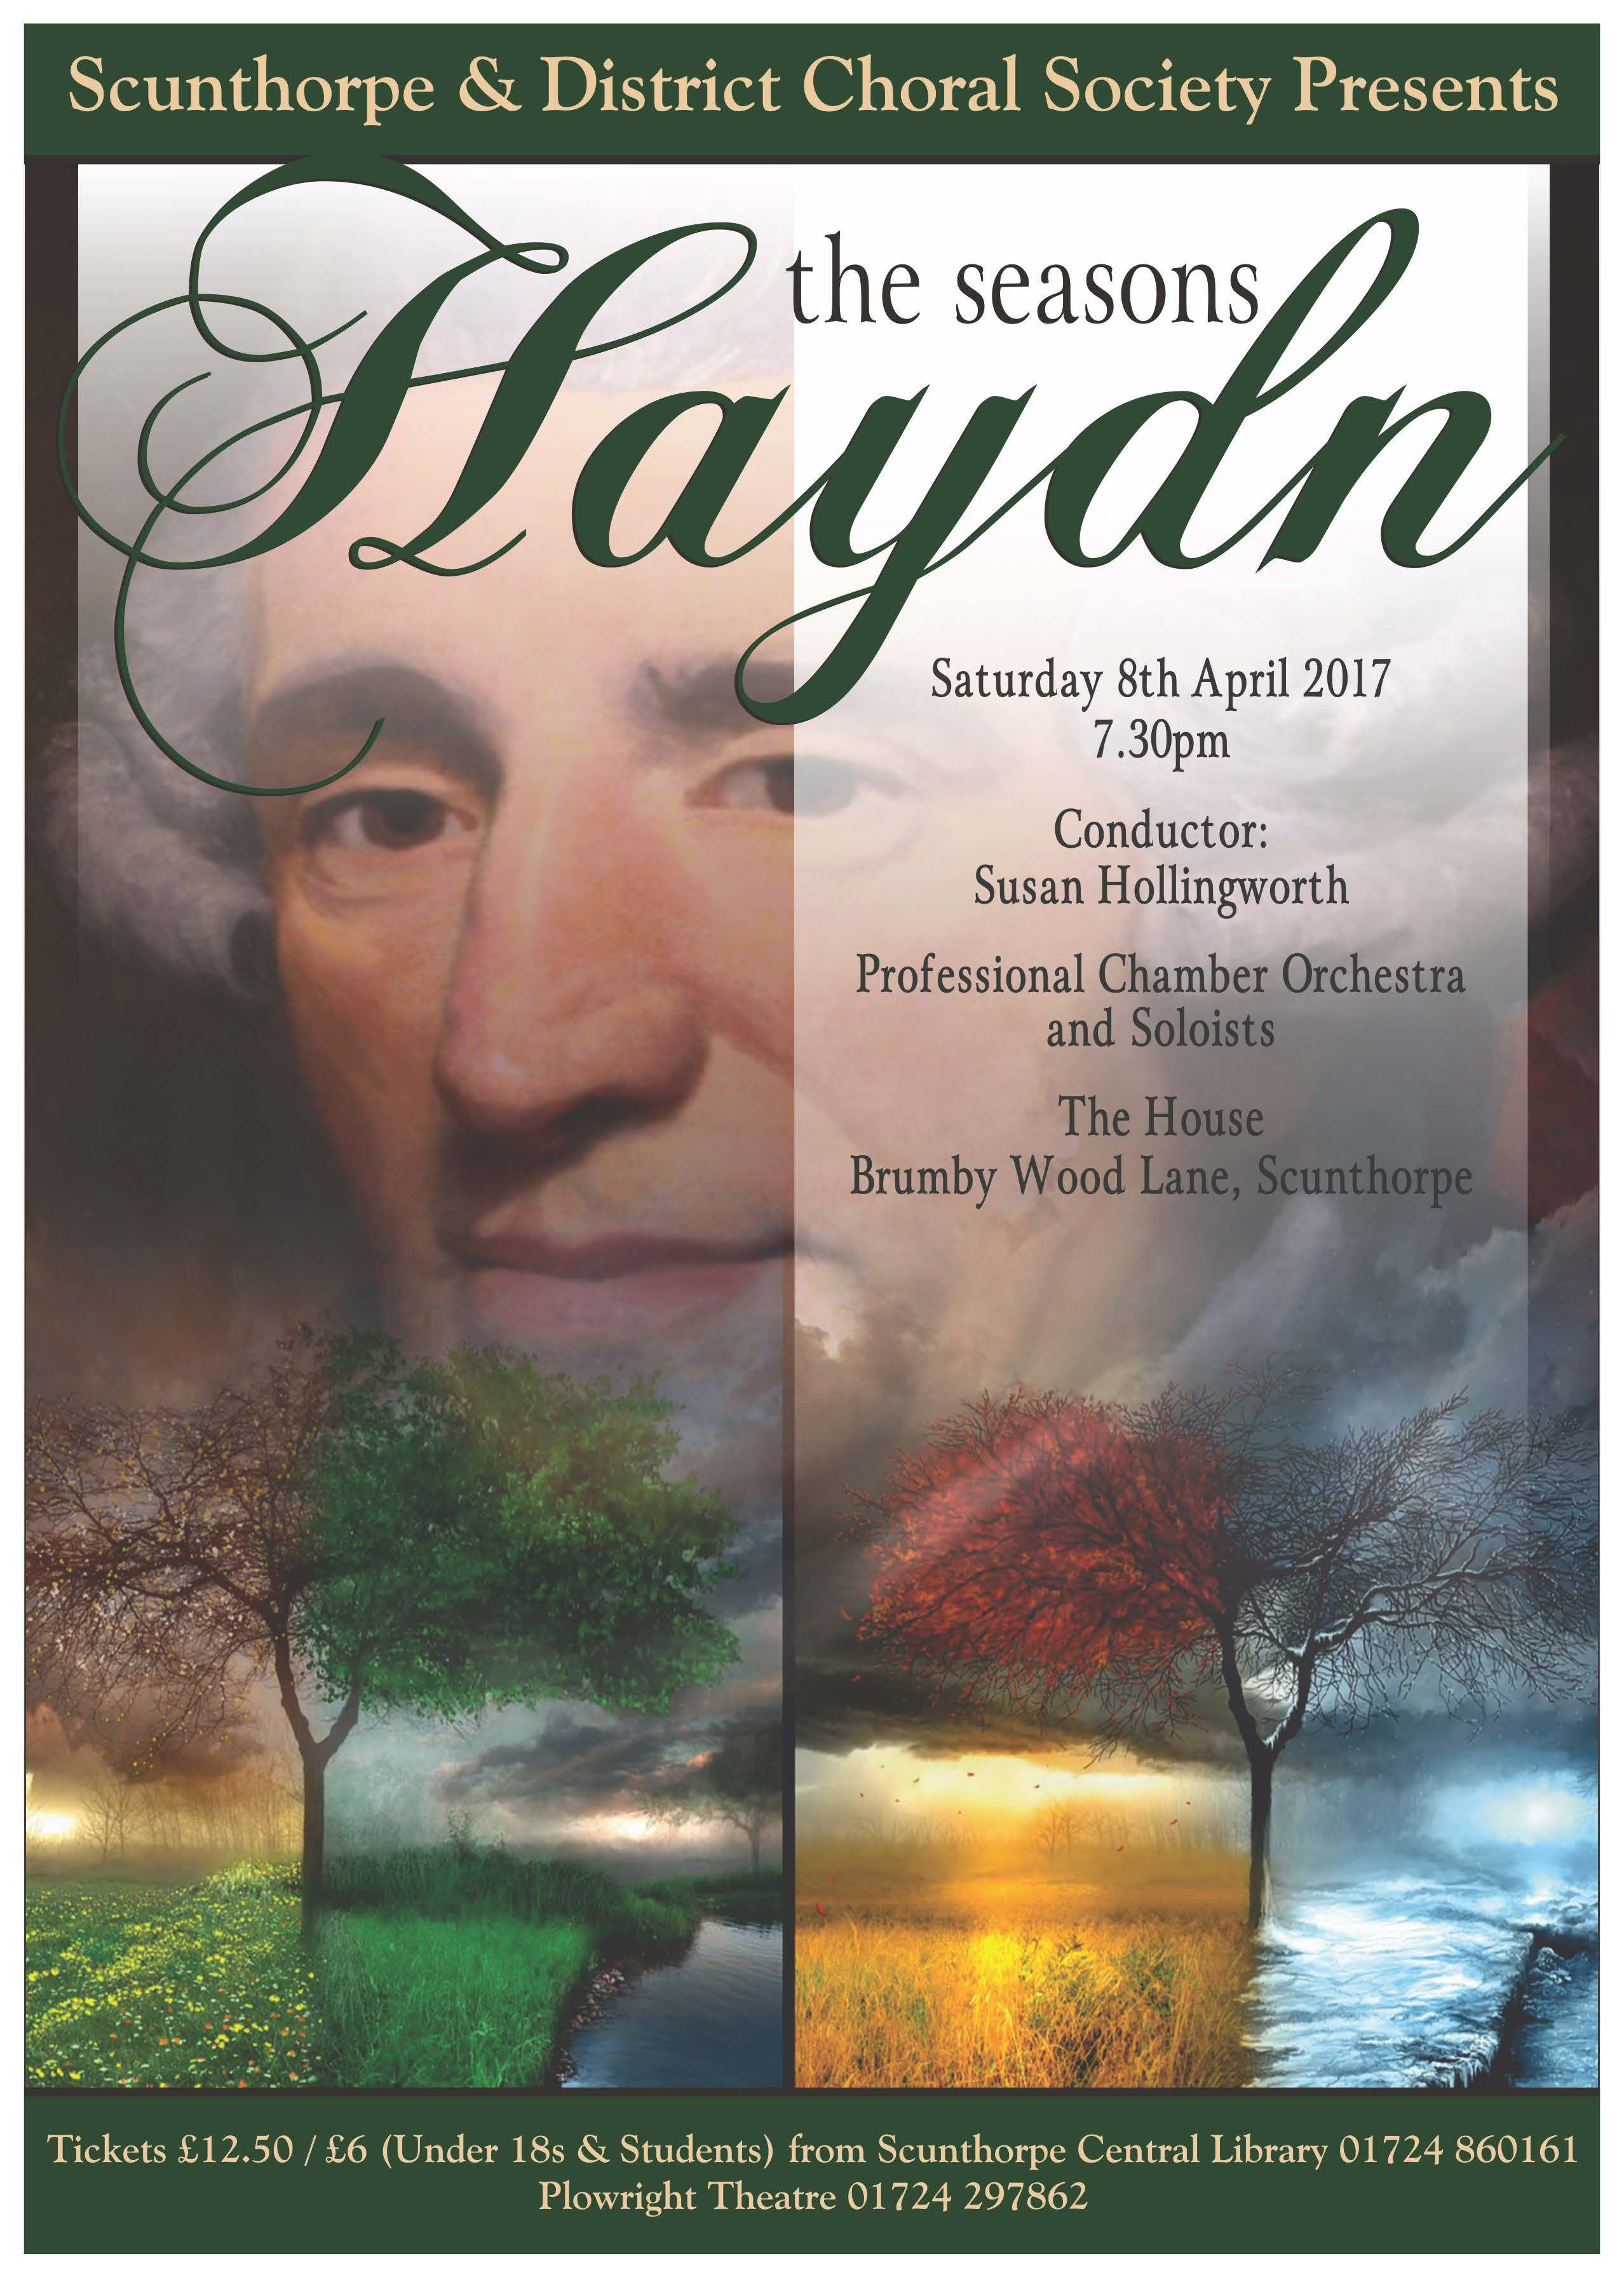 Scunthorpe & District Choral Society presents The Seasons by Haydn